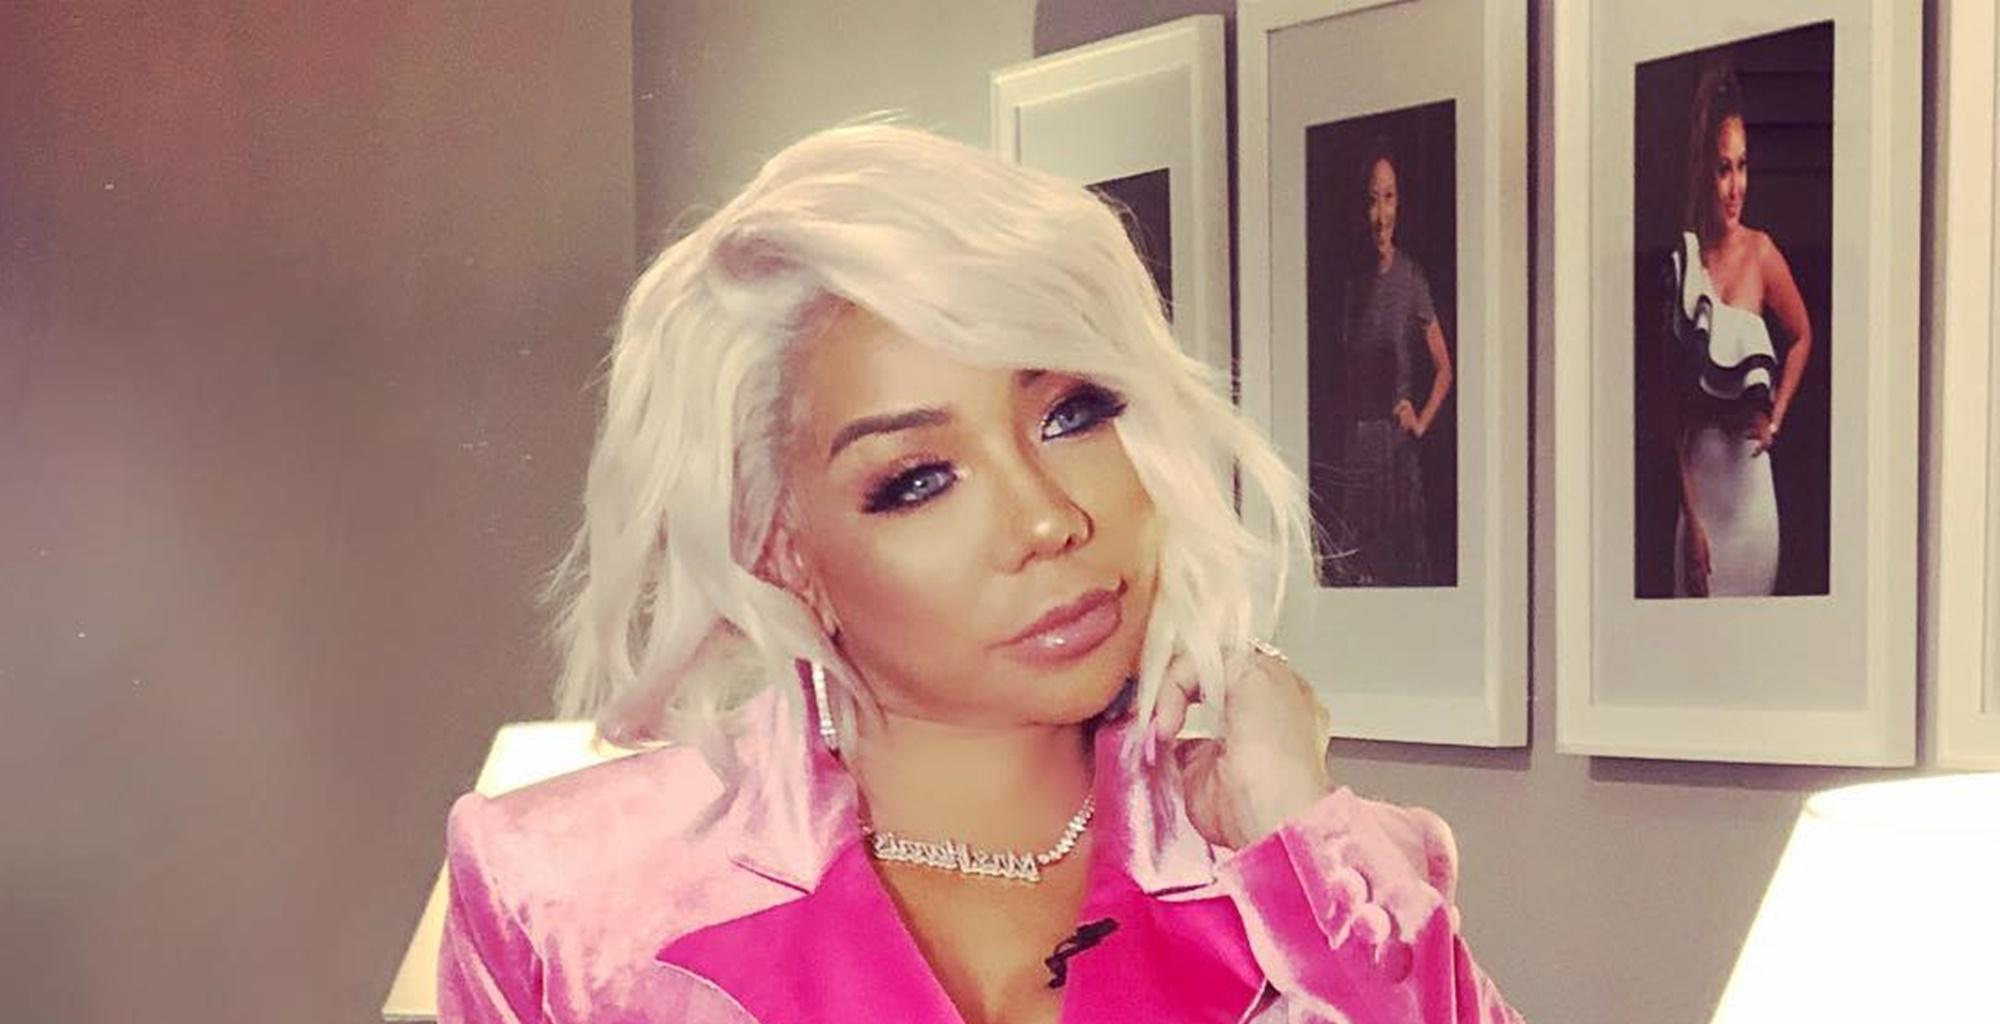 Tiny Harris And Xscape Touch Souls They Never Met Through Their Music